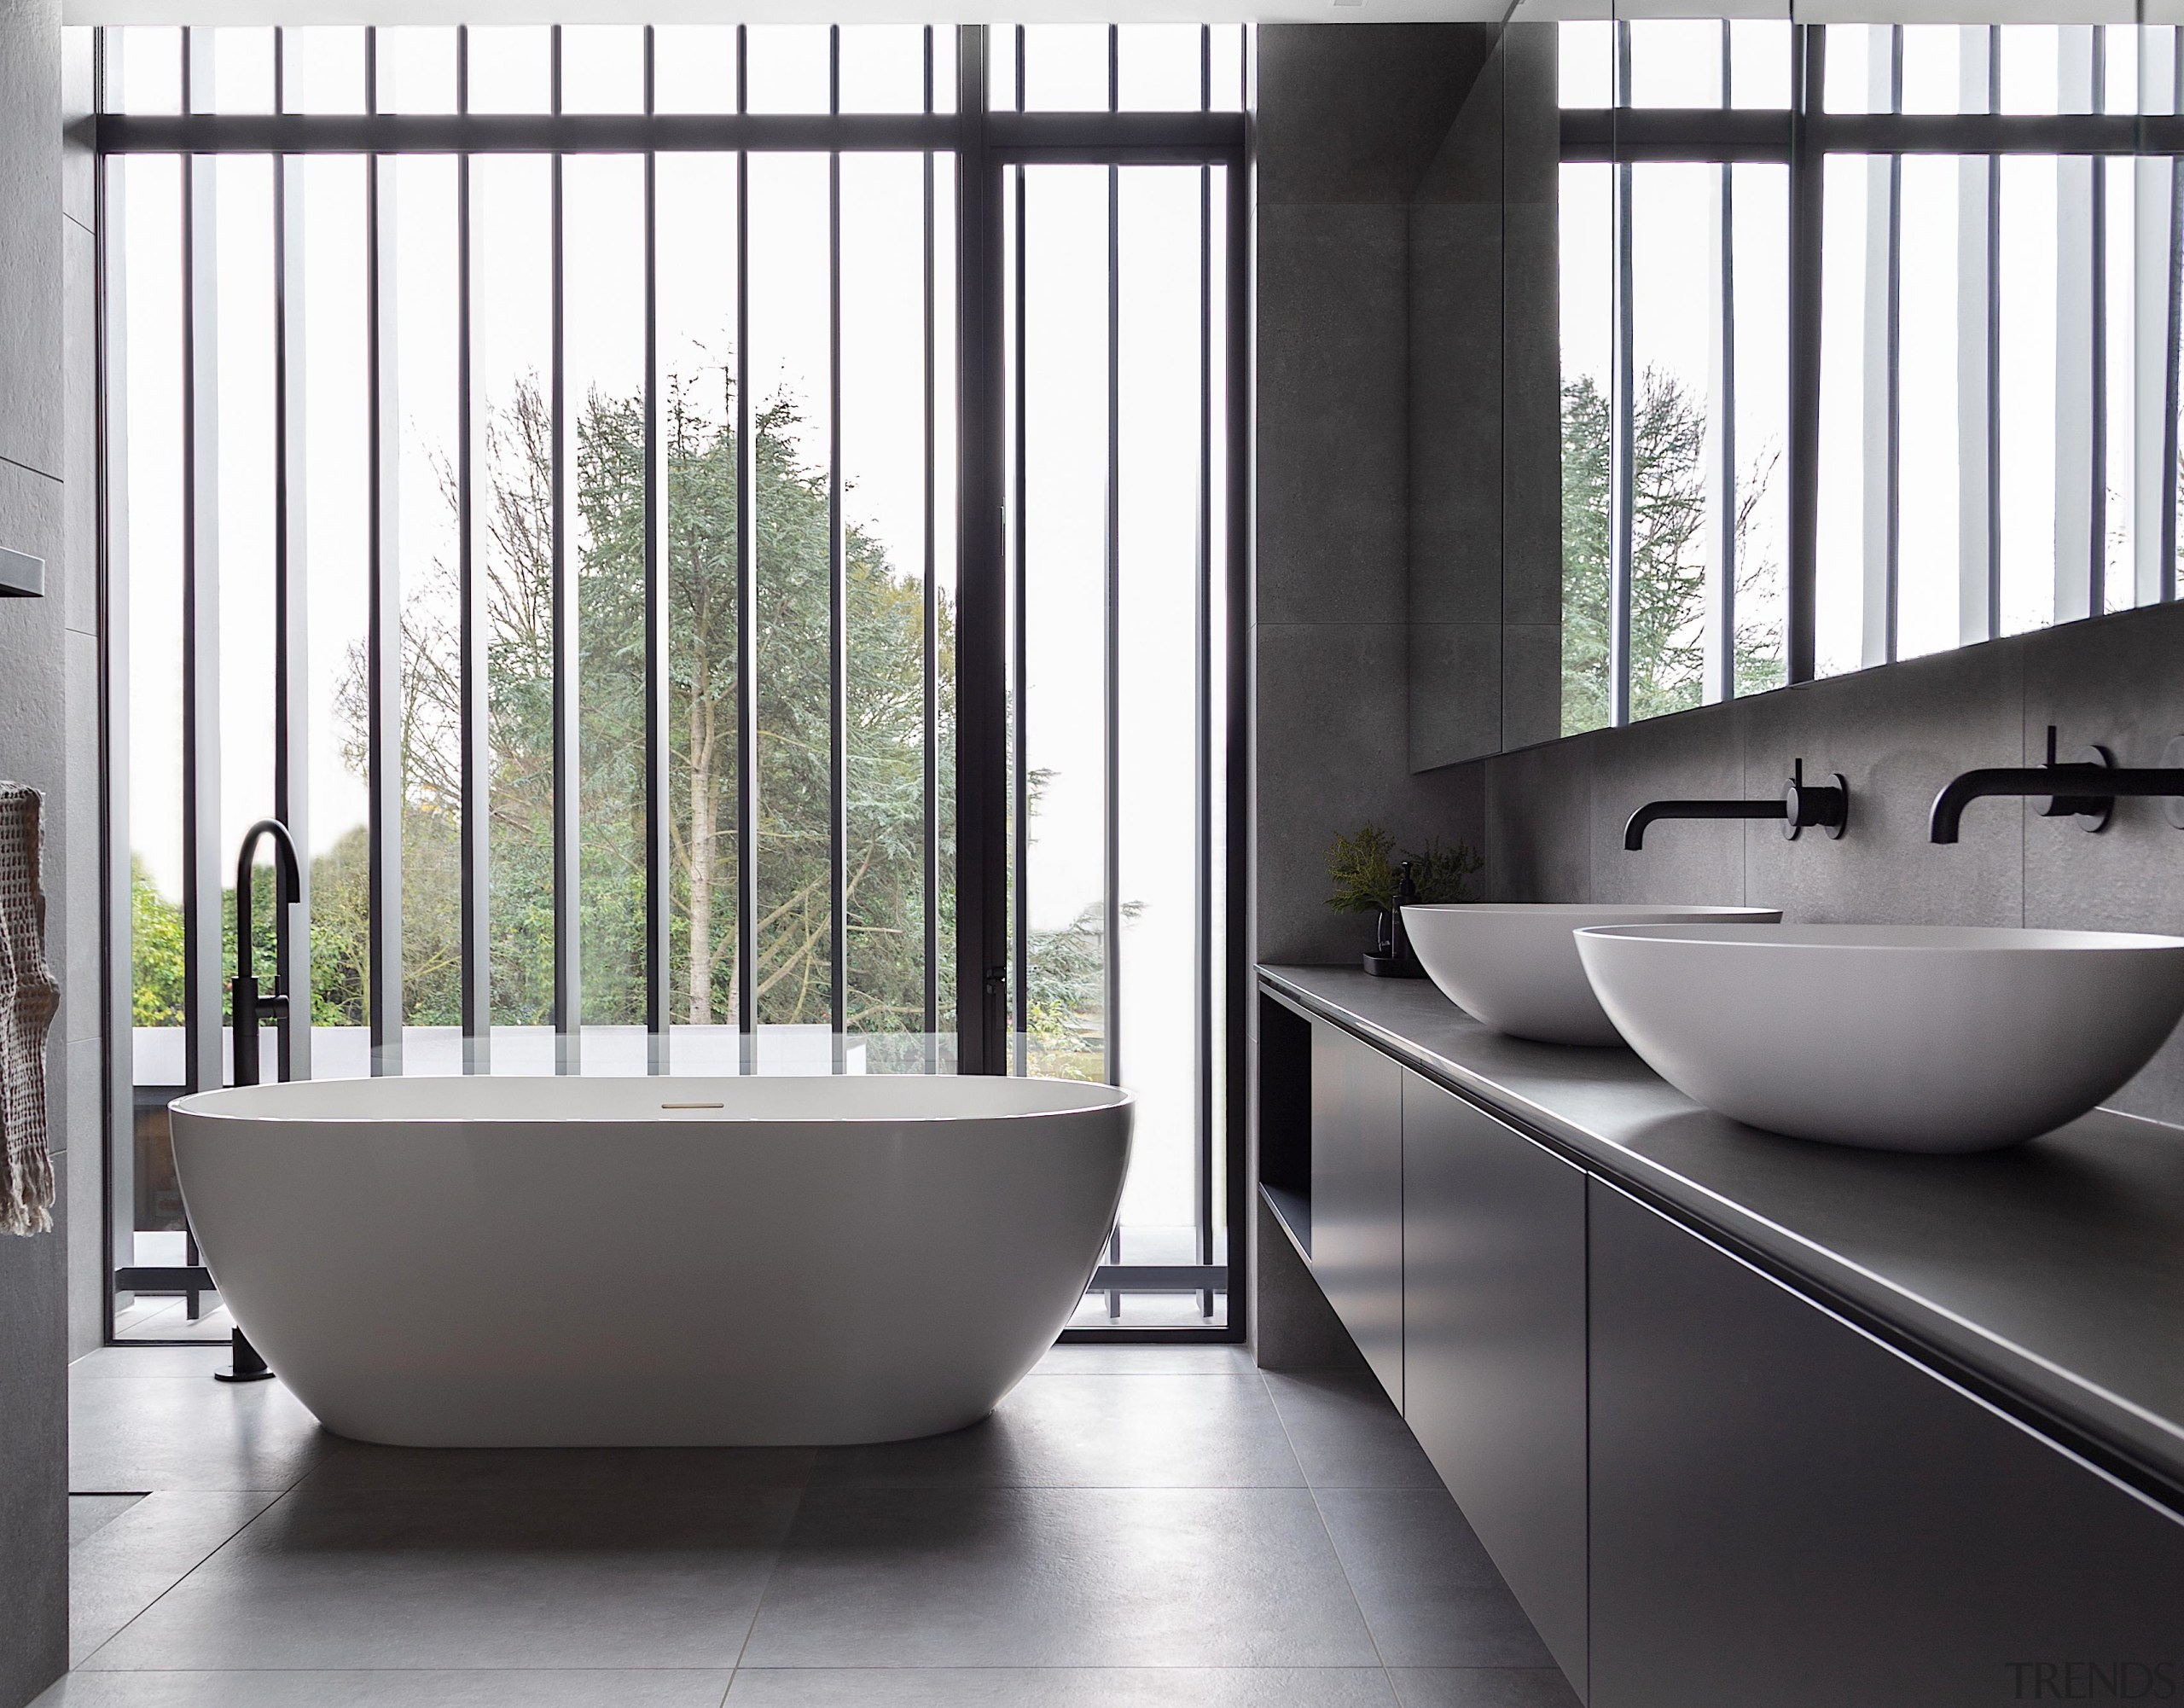 This understated family bathroom was deliberately designed to